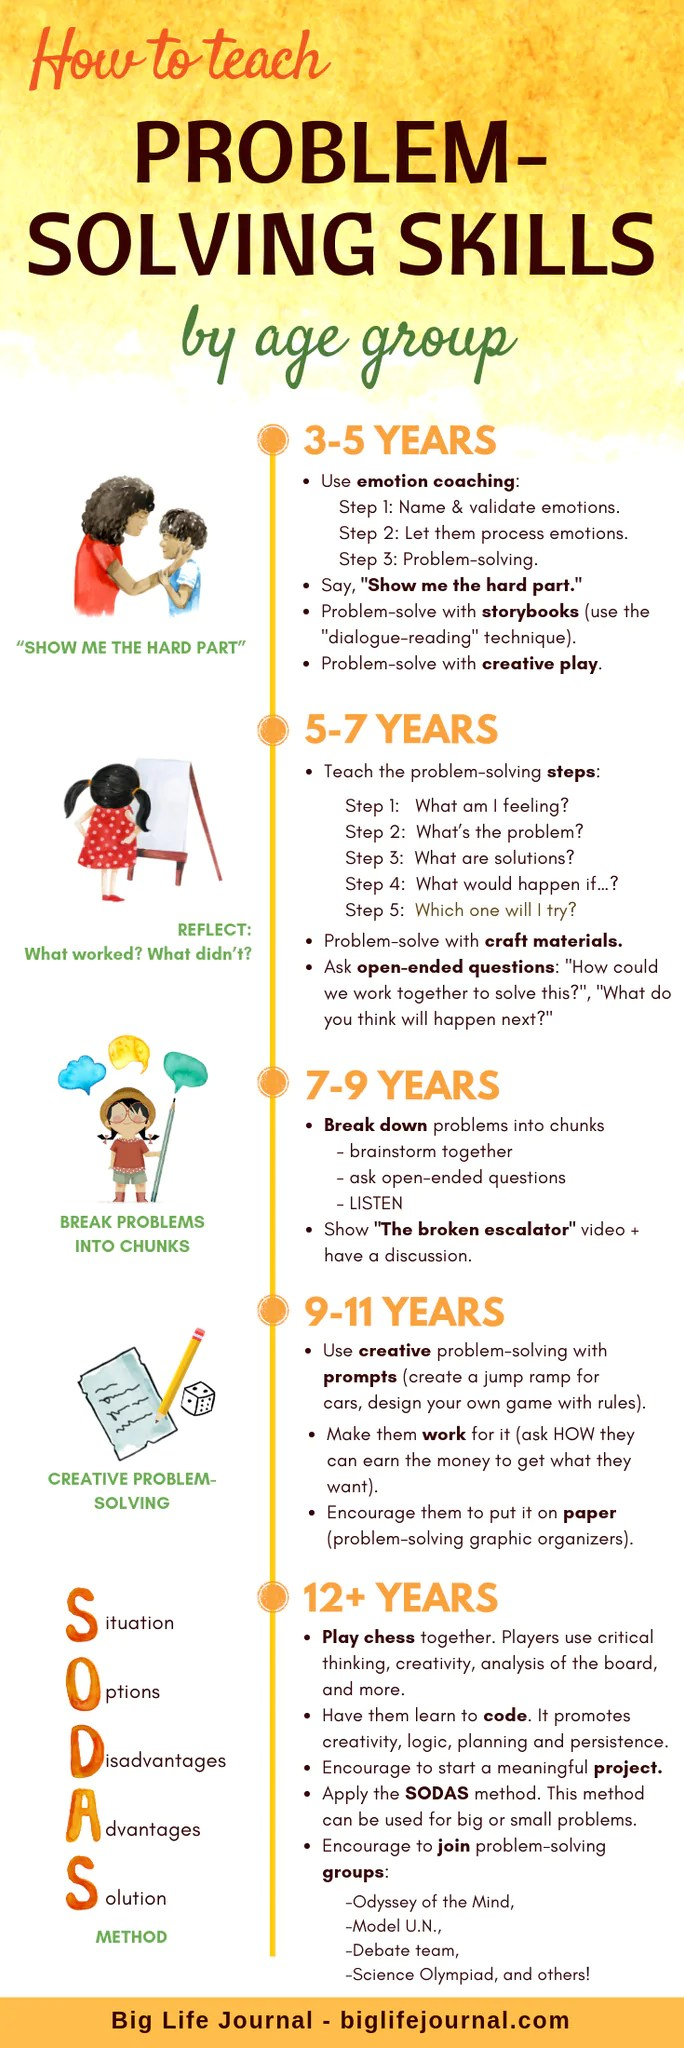 hight resolution of How to Teach Problem-Solving to Kids (ages 3-14) – Big Life Journal